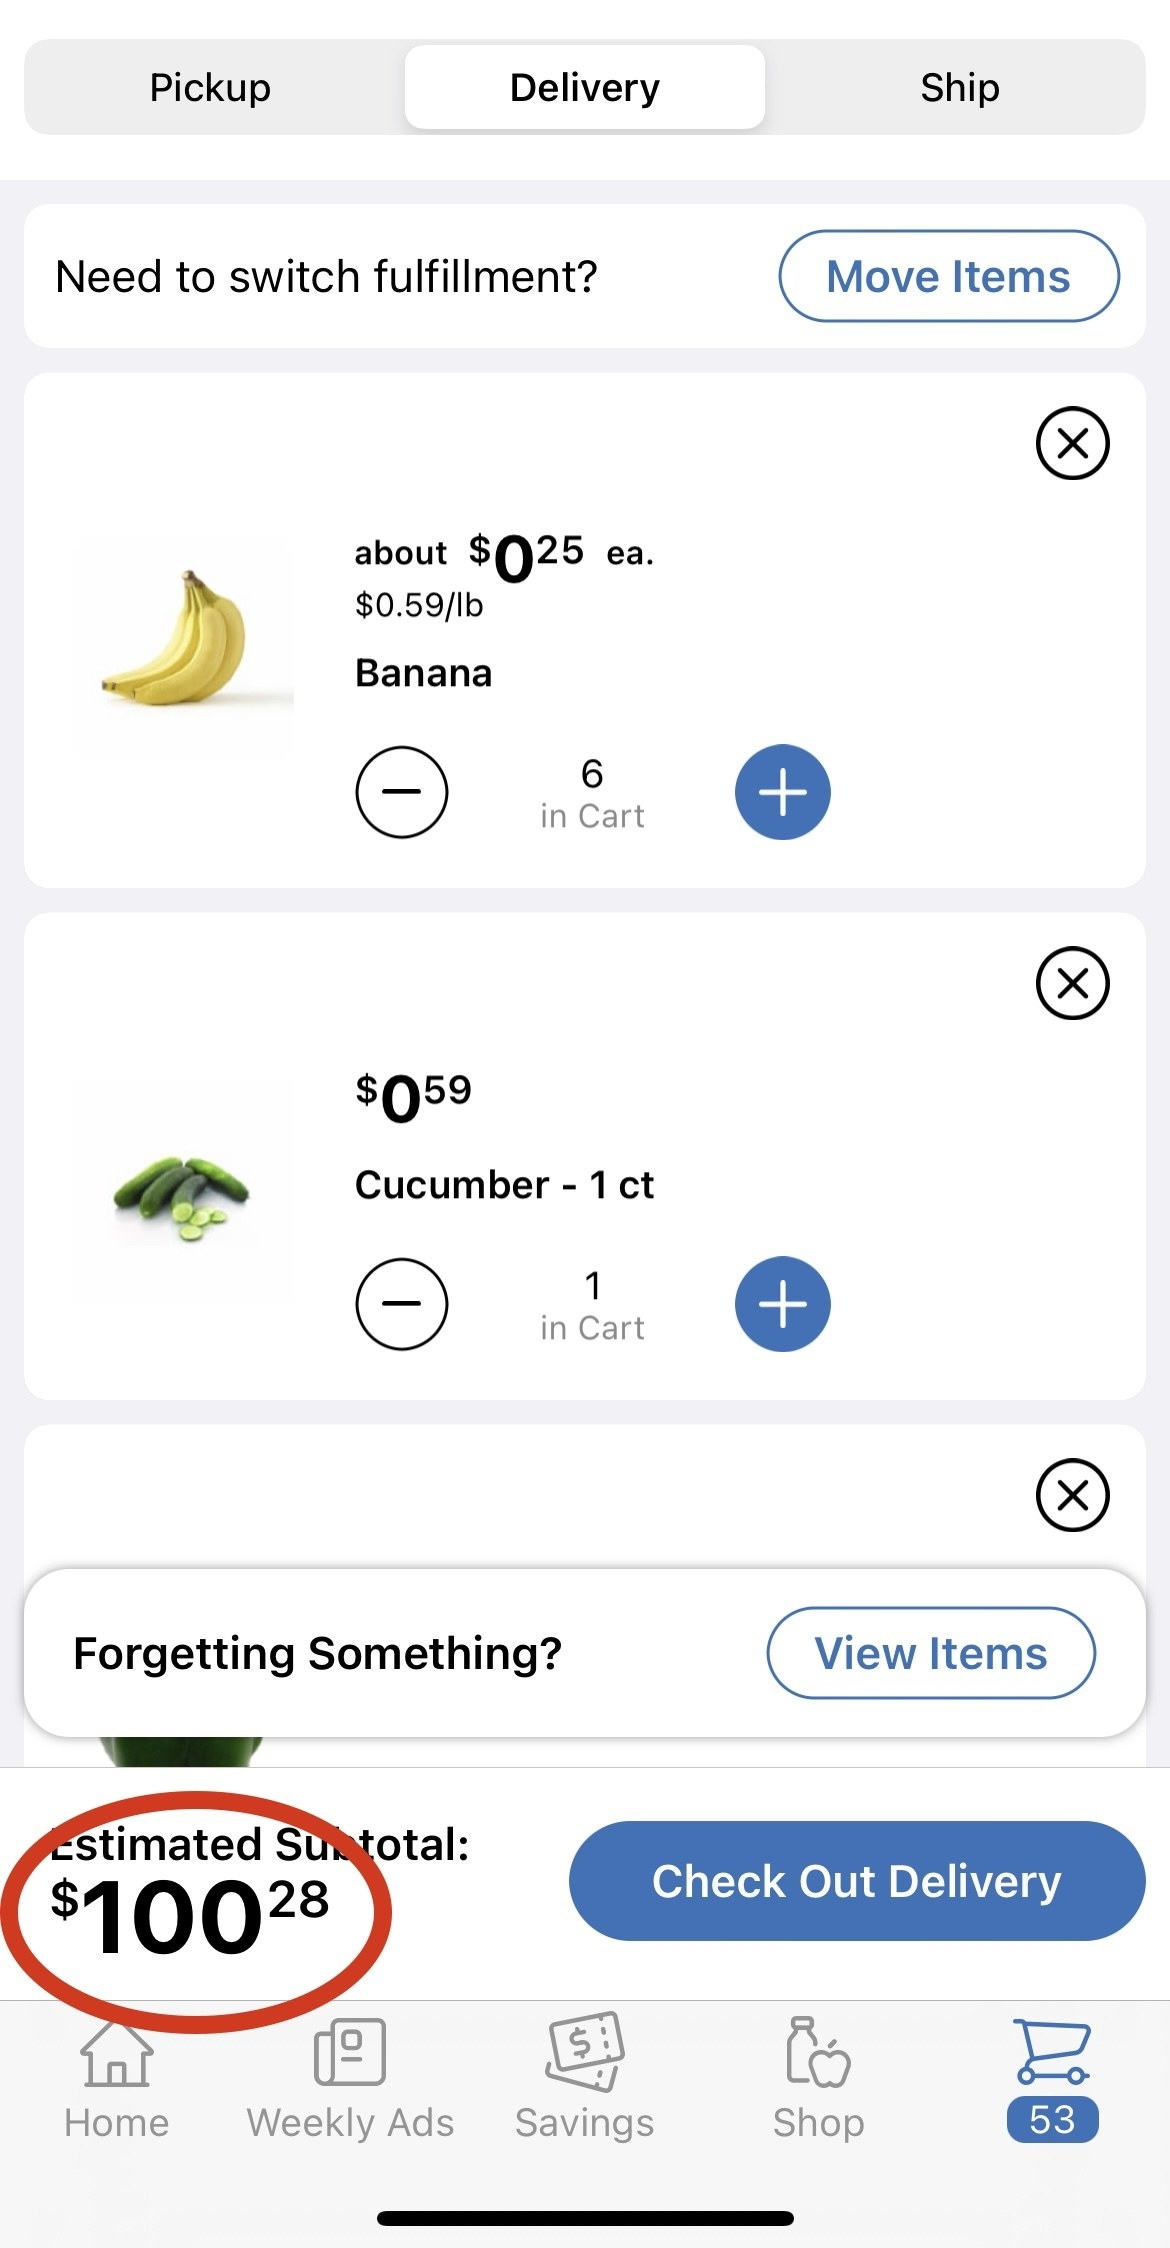 Total cost of groceries for the week- $100.28